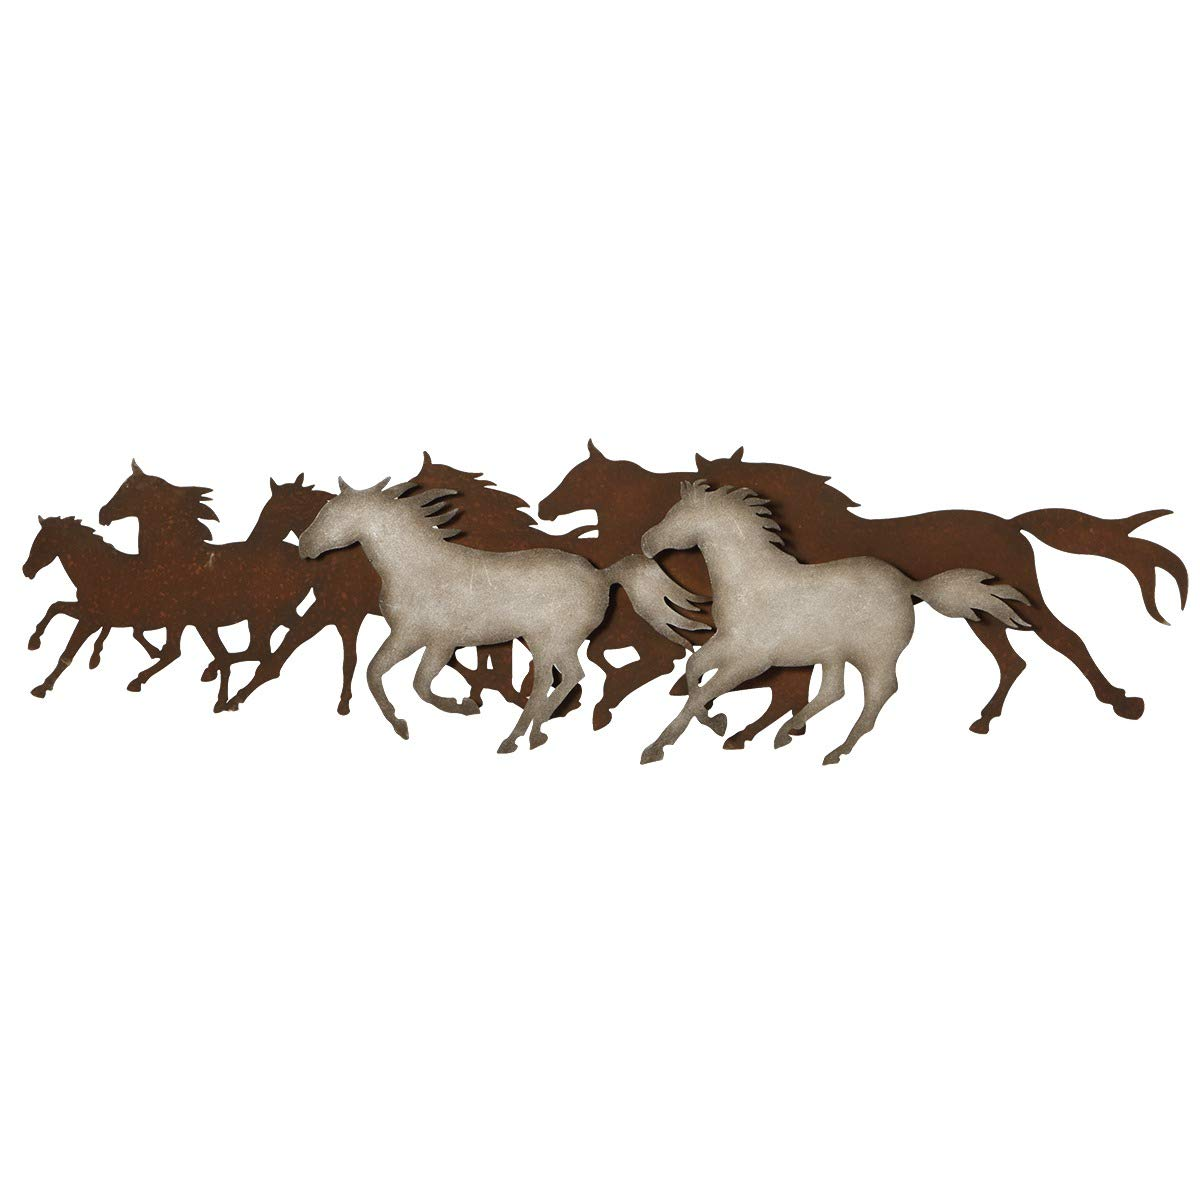 Midwest-CBK Galloping Horses Wall Décor